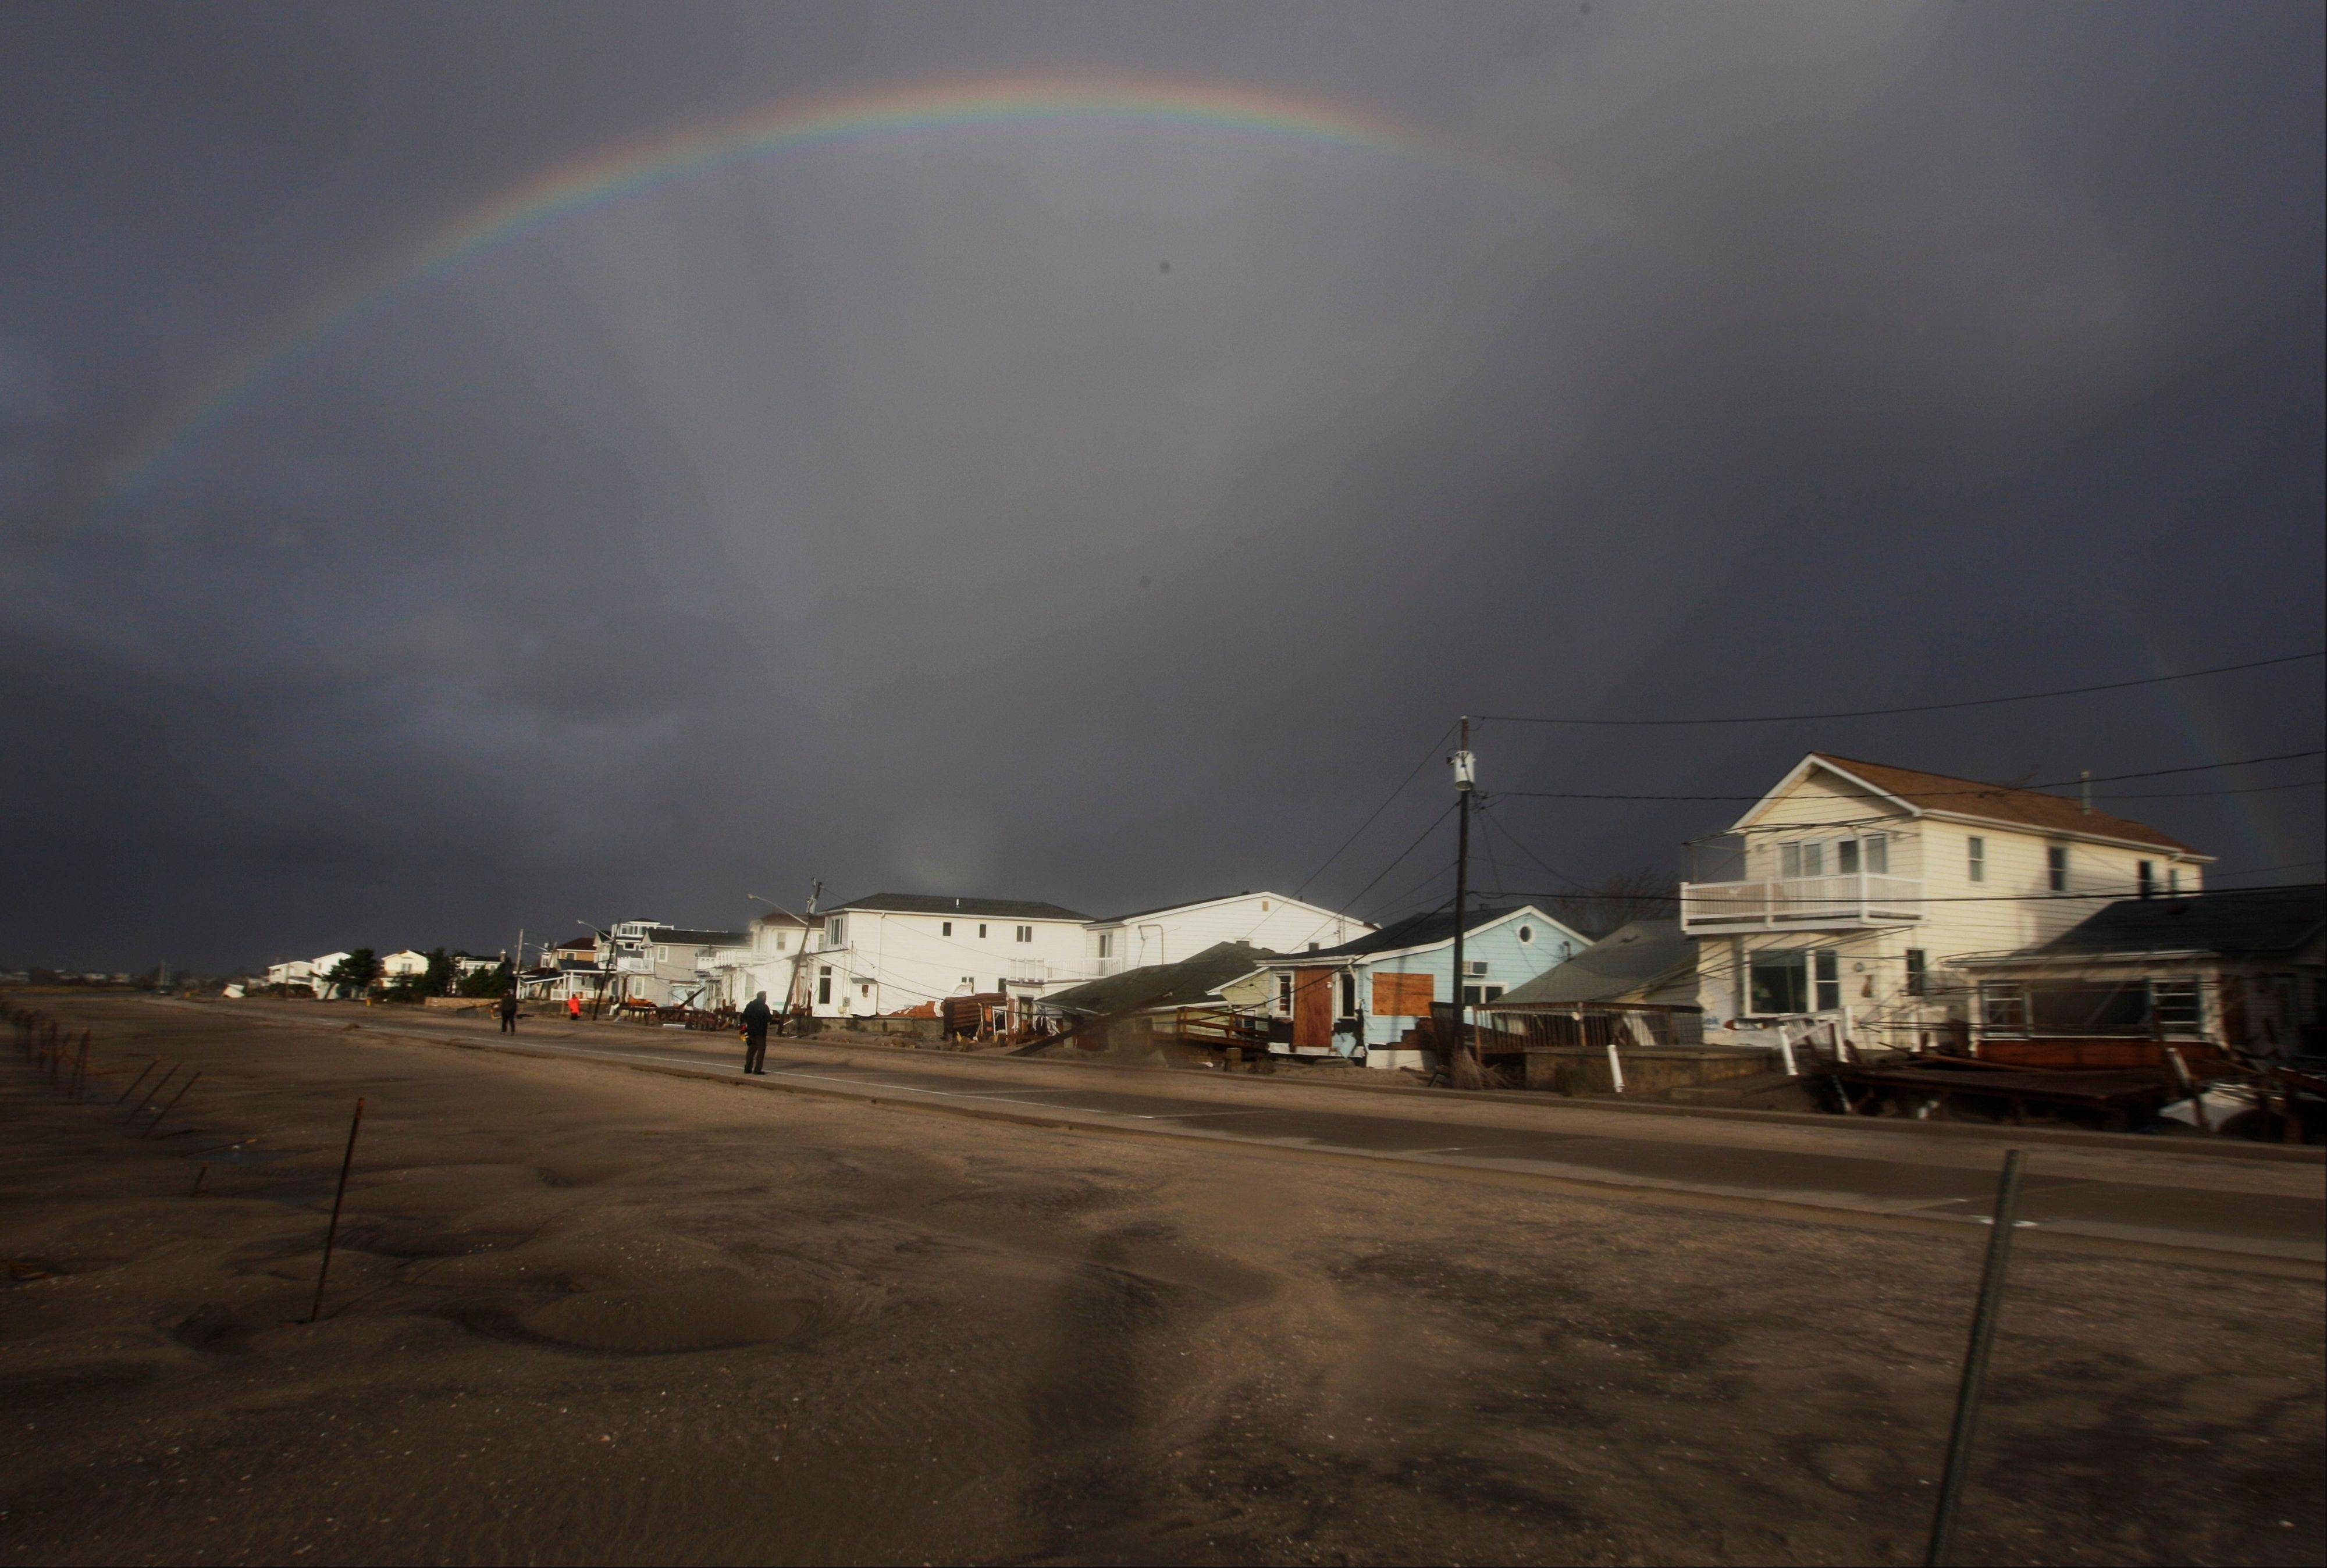 A rainbow forms over Breezy Point in the New York City borough of Queens, in the aftermath of superstorm Sandy, Tuesday, Oct. 30, 2012, in New York. The fire destroyed between 80 and 100 houses Monday night in the flooded neighborhood.